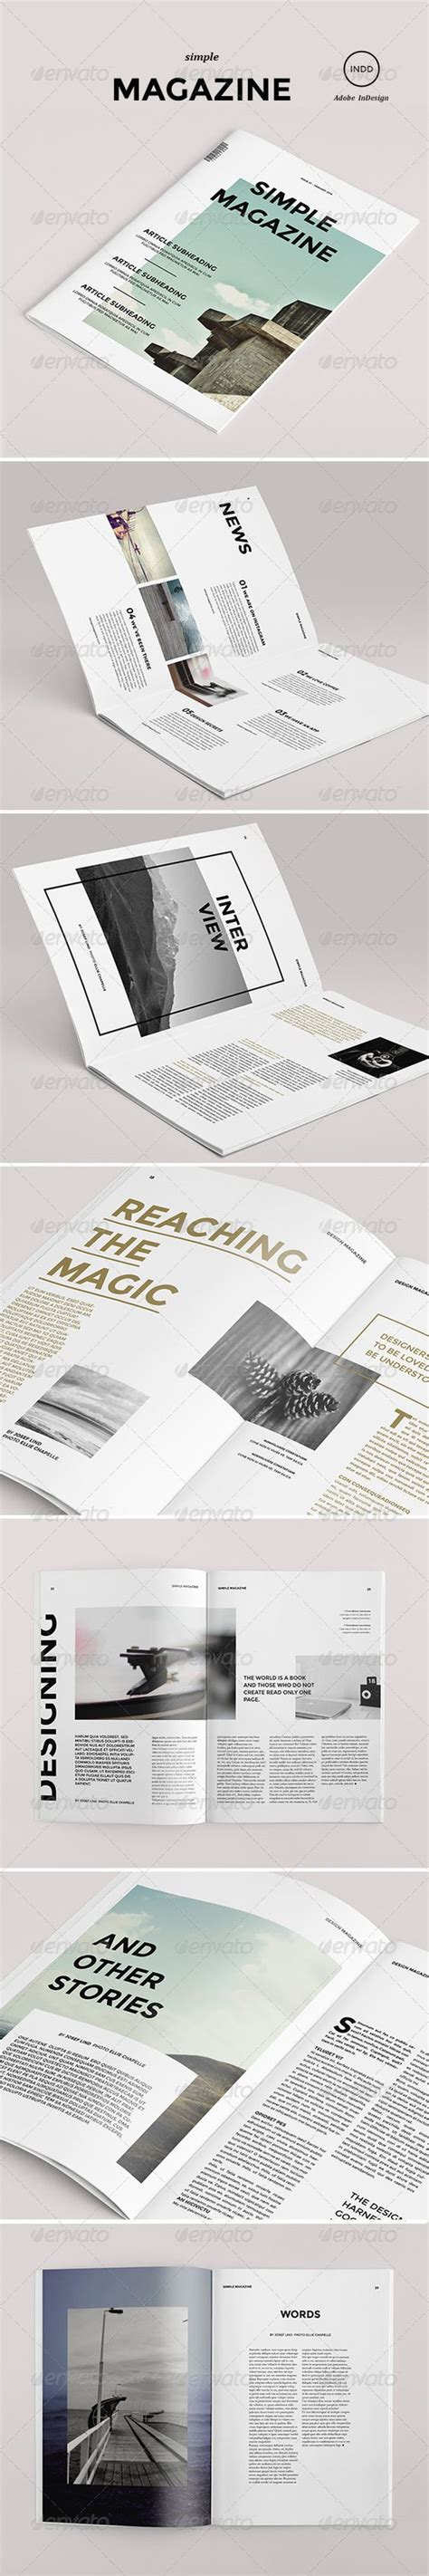 simple graphic design layout simple magazine typography graphics and design